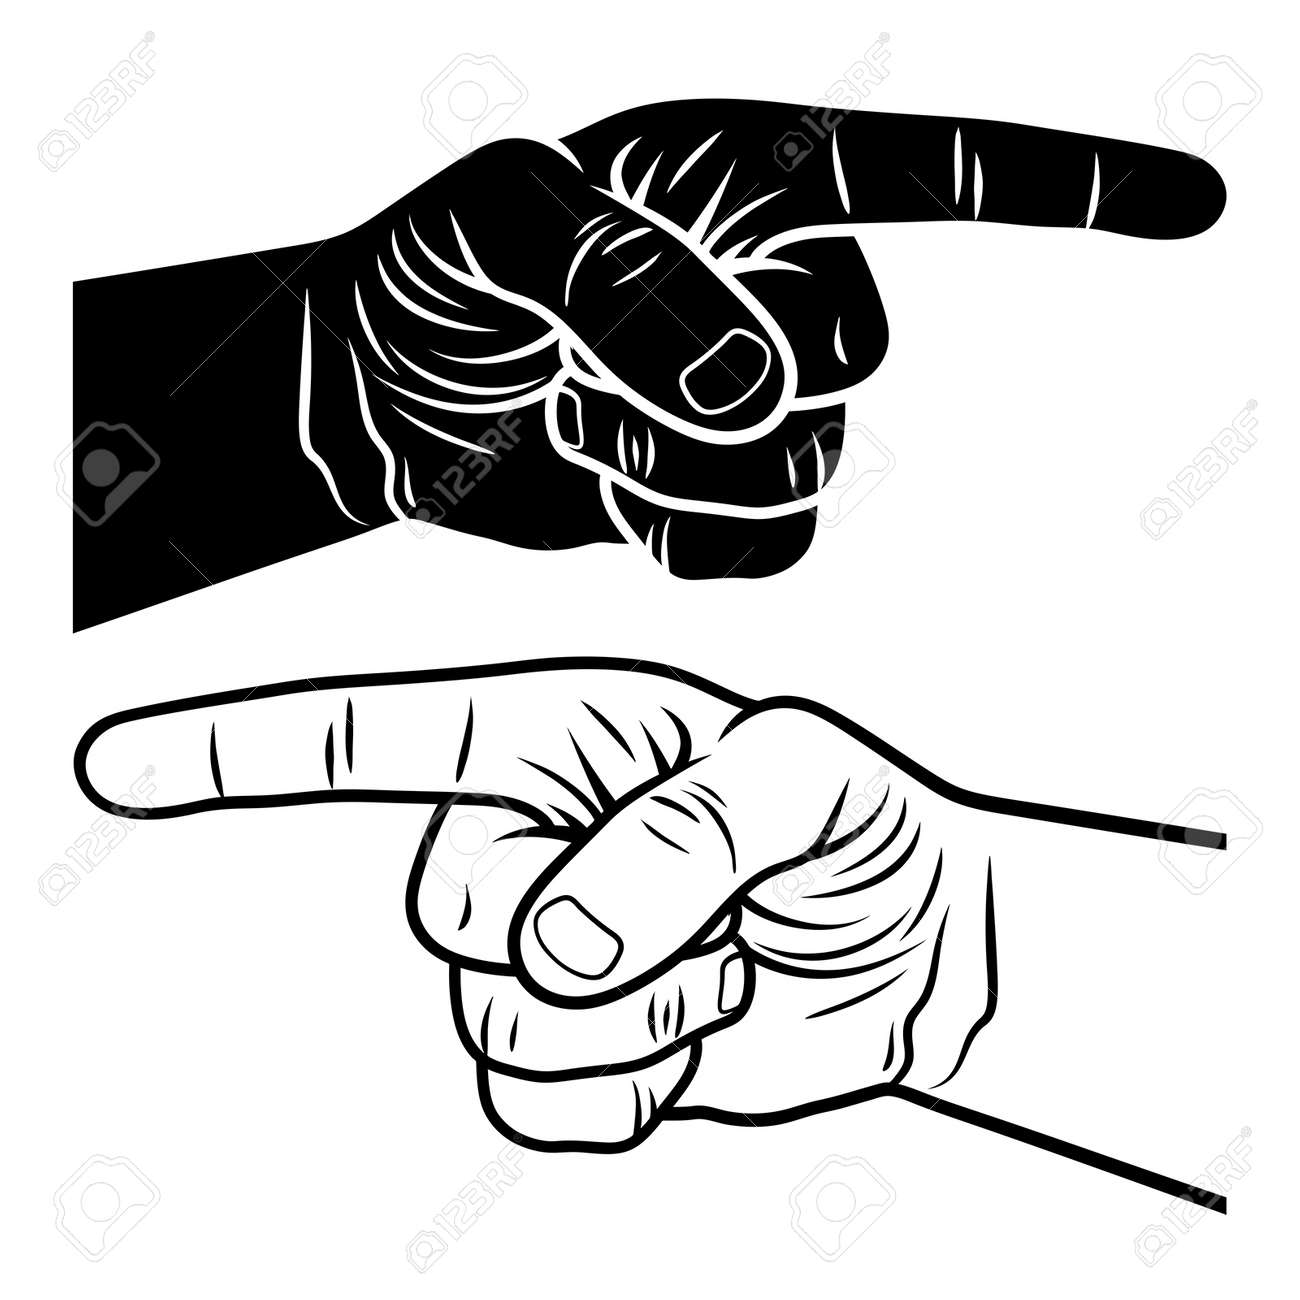 pointing hand vector illustration of a pointing finger hand drawn royalty free cliparts vectors and stock illustration image 88171816 123rf com